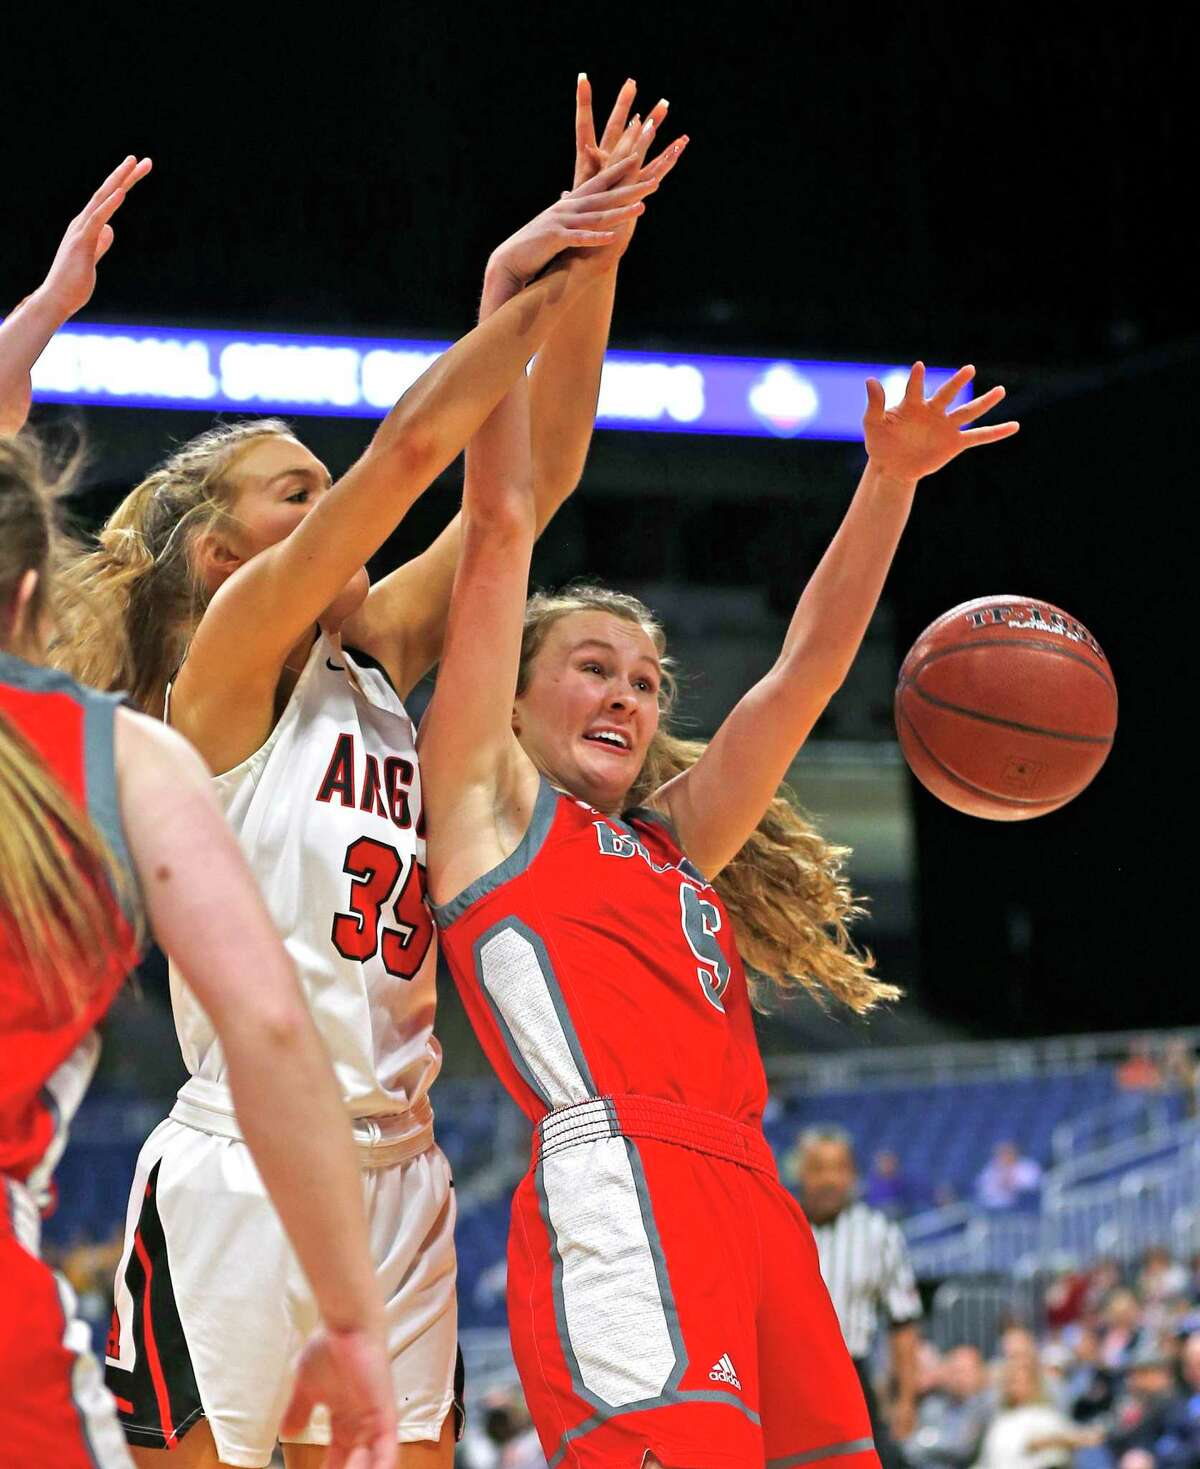 Argyle forward Shelby Henches #35 battles Fredericksburg forward Caitie Huff #5 in Class 4A state semifinal where Argyle defeated Fredericksburg 49-38 on Friday, March 6, 2020 at the Alamodome. (Ron Cortes/Contributor)